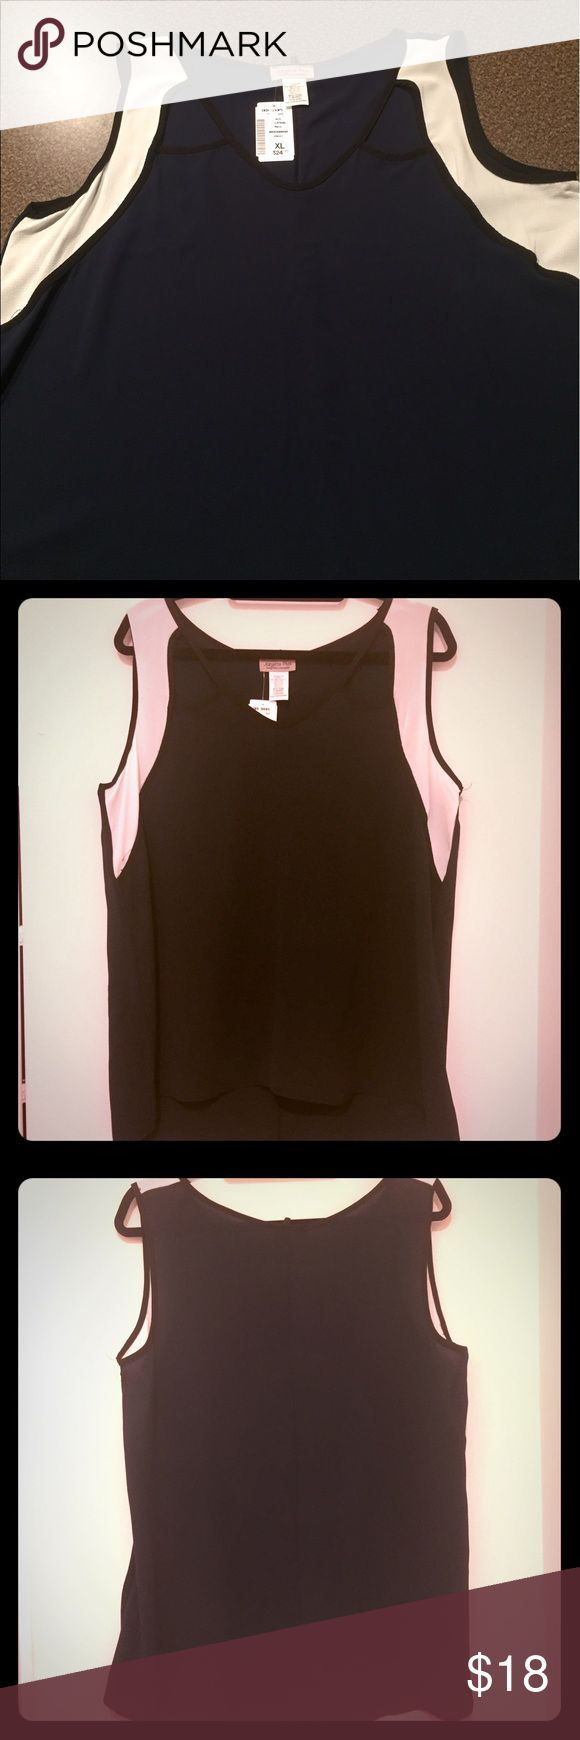 🎁 FLASH HOLIDAY SALE!! 🎁 NWT. Deb Shop color block tank. Cutout shoulder detail. Navy blue, black trim Deb Tops Tank Tops